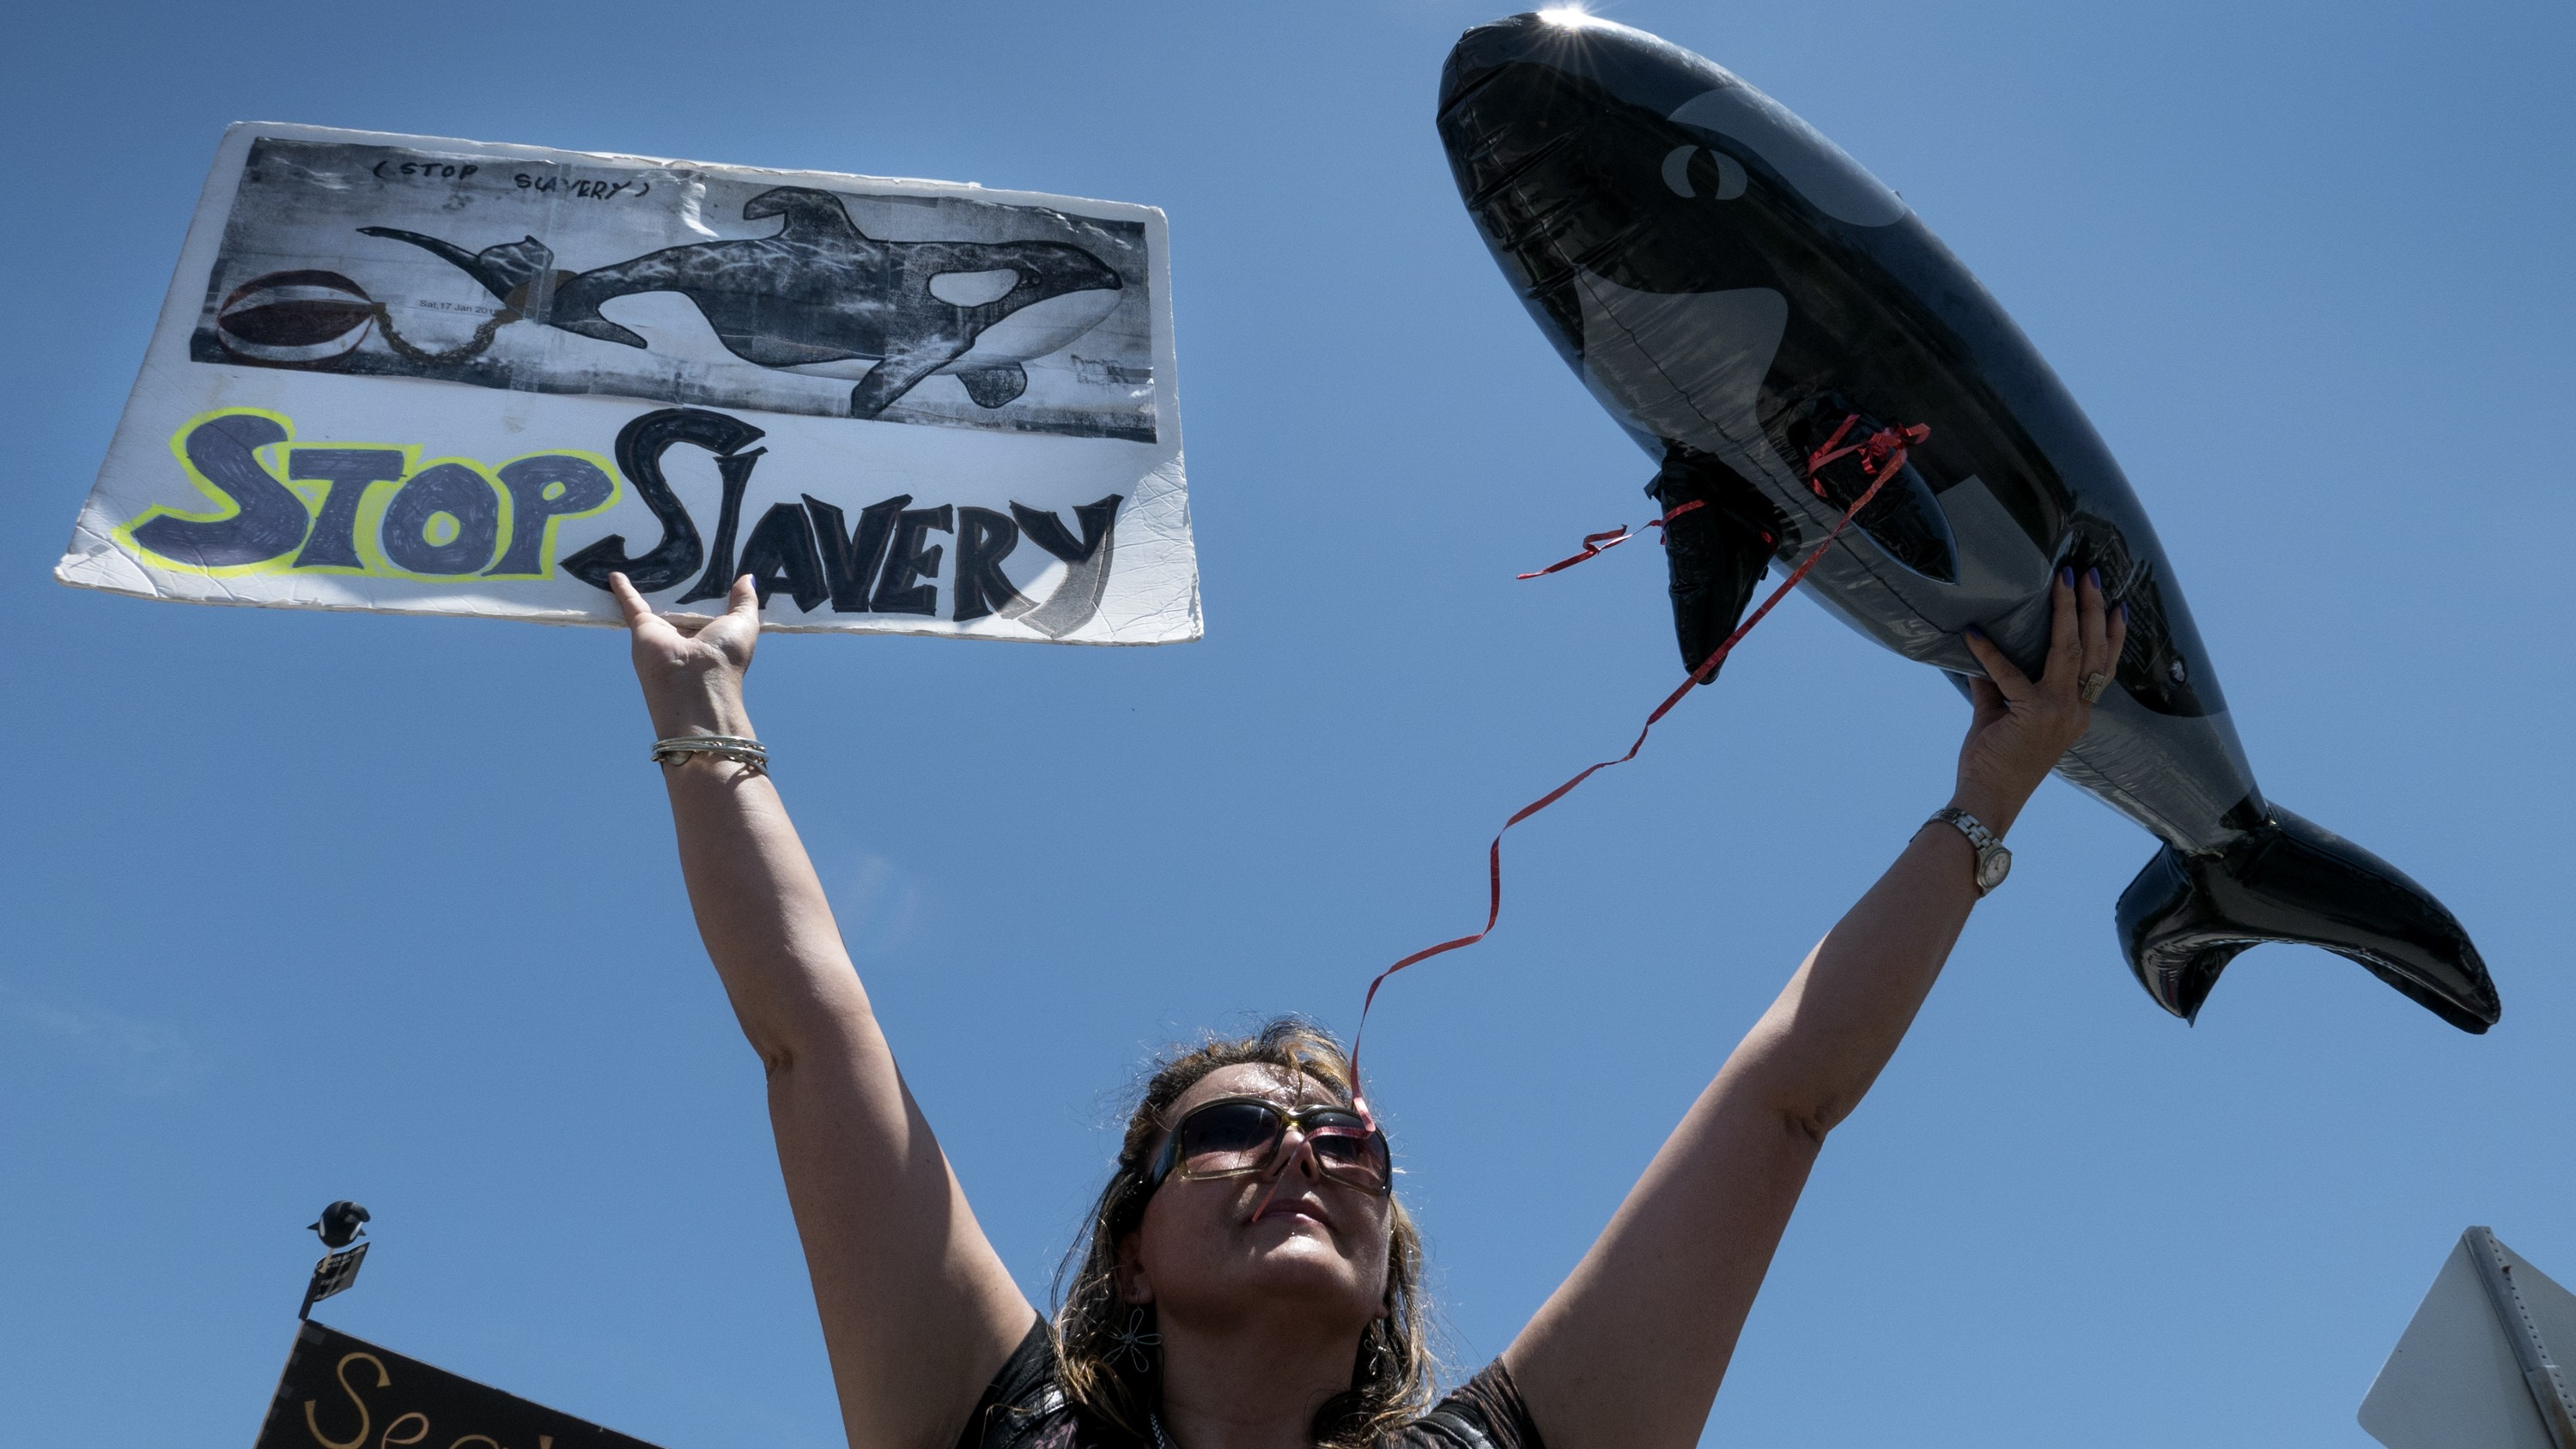 California Bans SeaWorld From Breeding or Transferring Killer Whales in Captivity